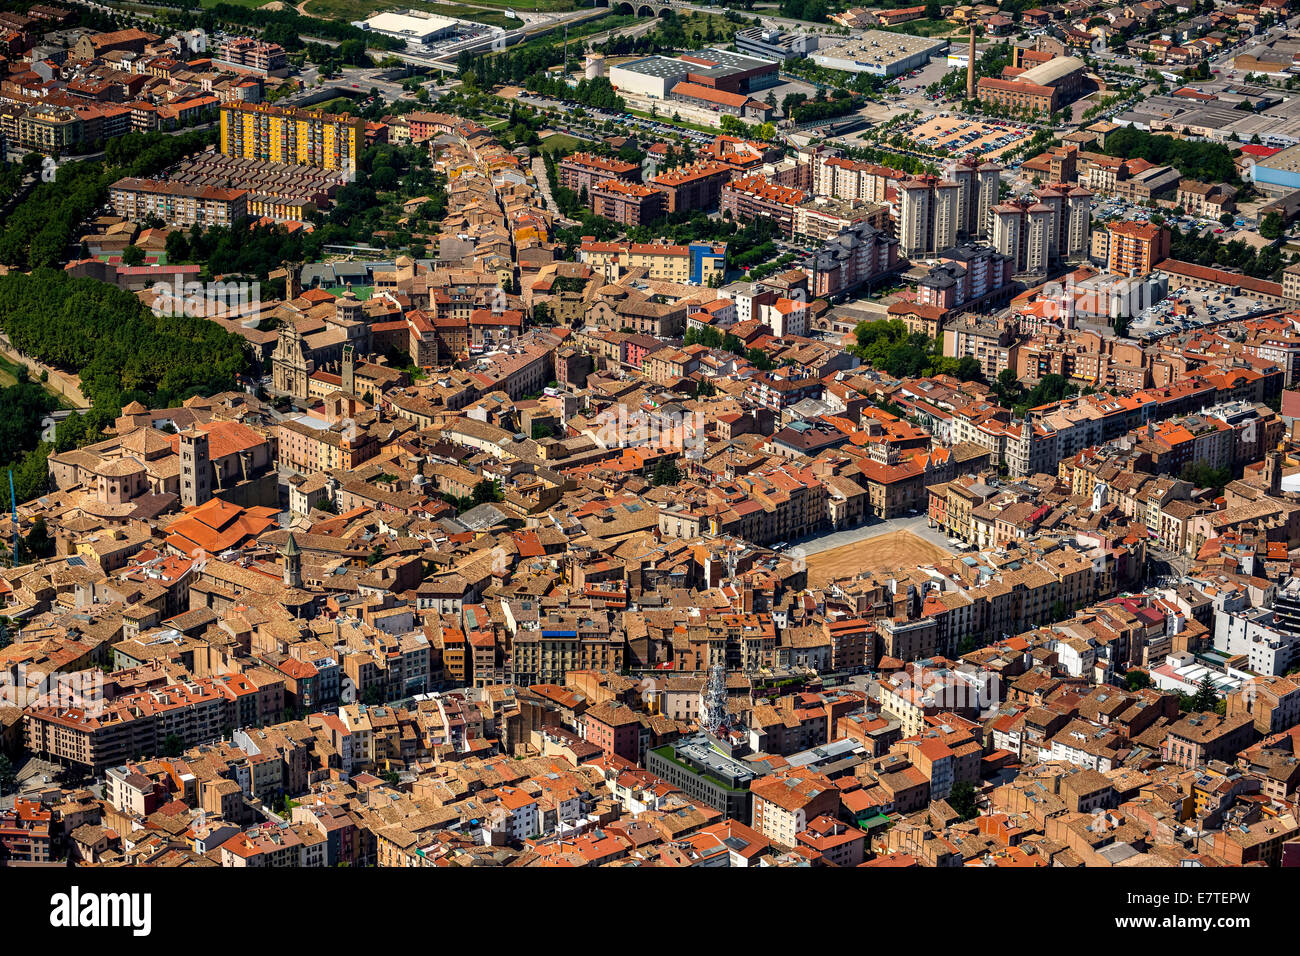 Aerial view, view of the historic centre, Vic, Catalonia, Spain - Stock Image